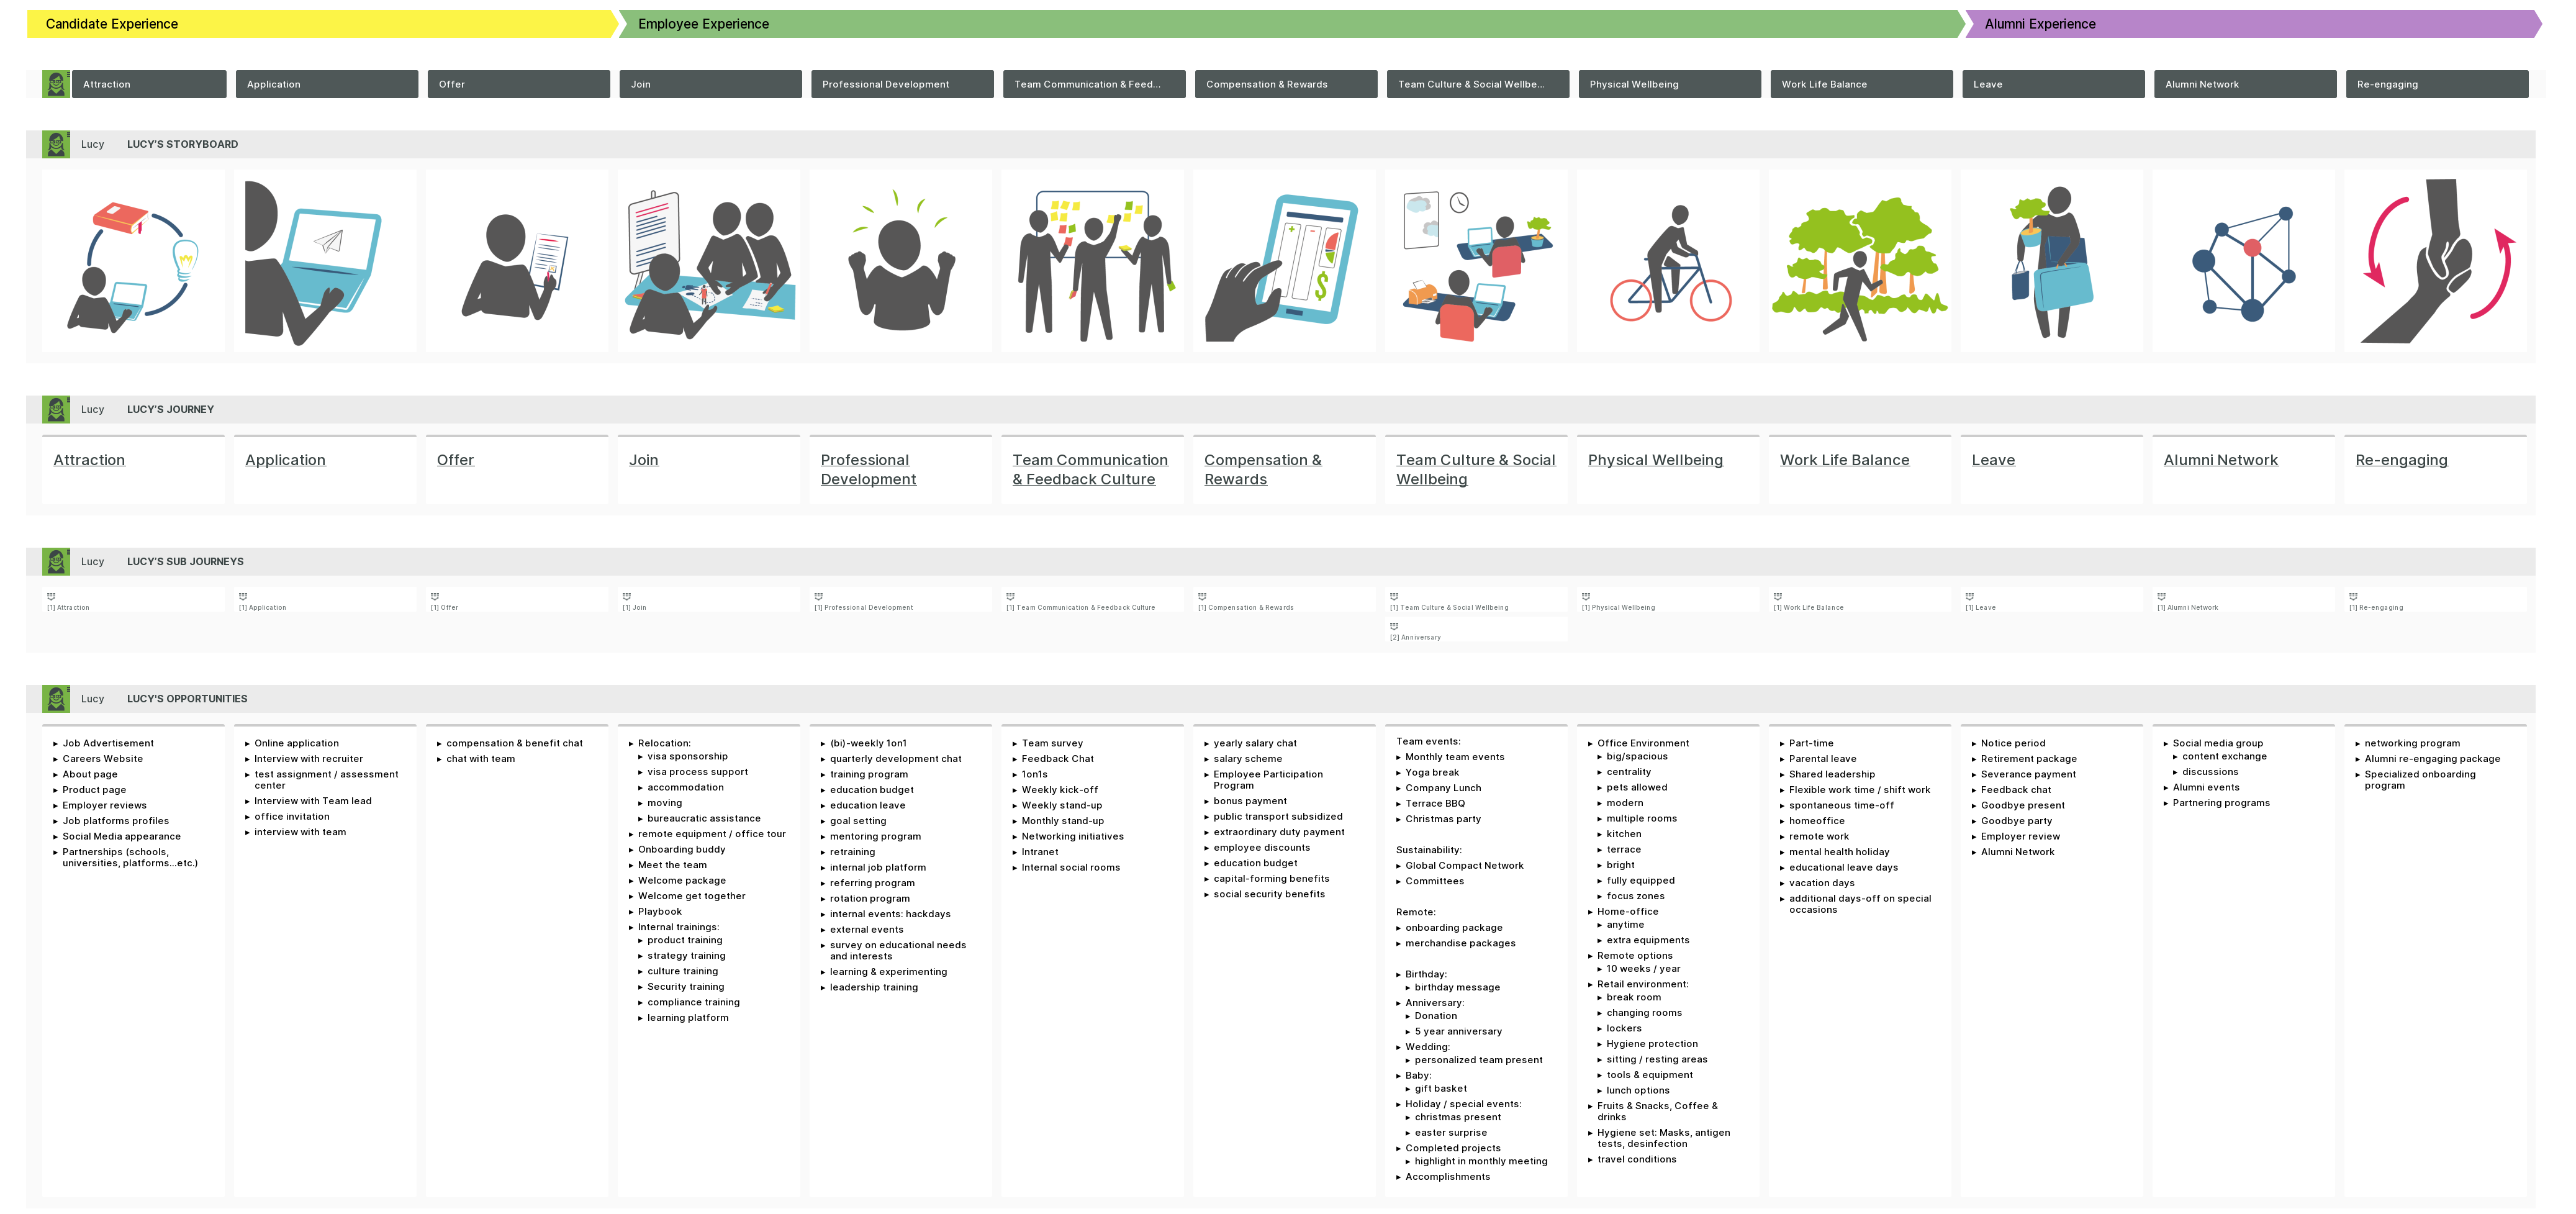 employee journey map created in smaply showing the high-level journey of an employee